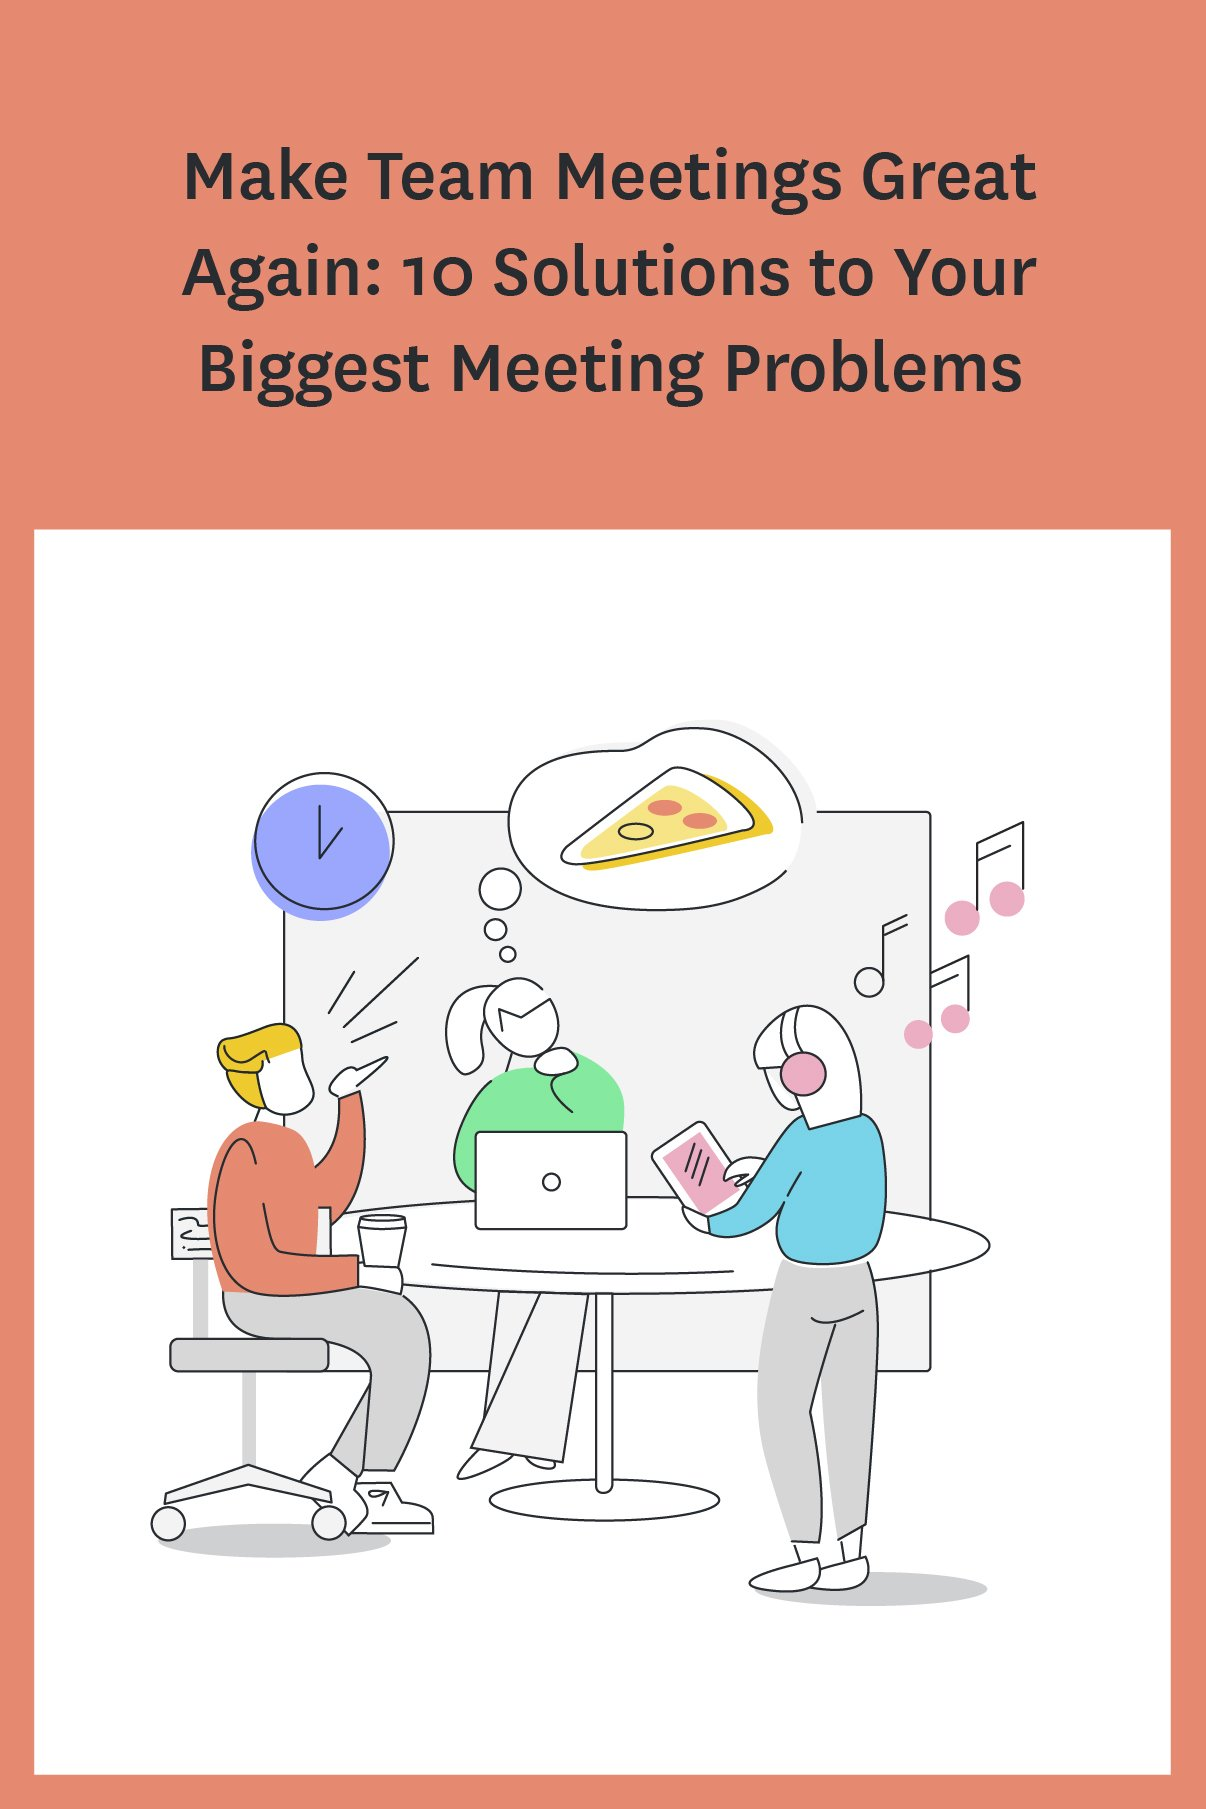 If you dread meetings, these 10 tips will help you make your meetings more productive and enjoyable for the entire team.